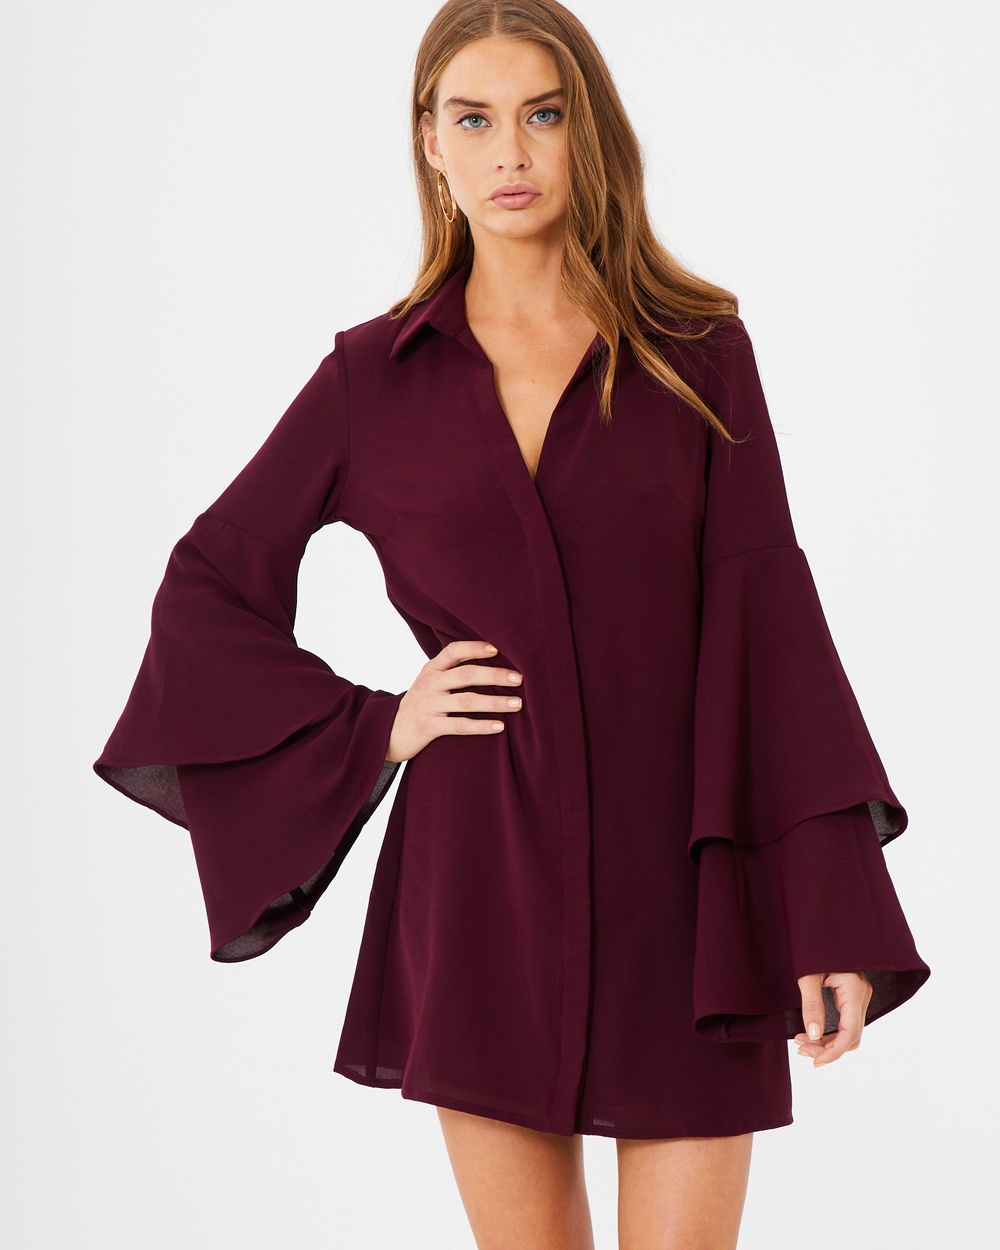 Photo of Tussah Plum  Paola Shirt Dress - buy Tussah dresses on sale online